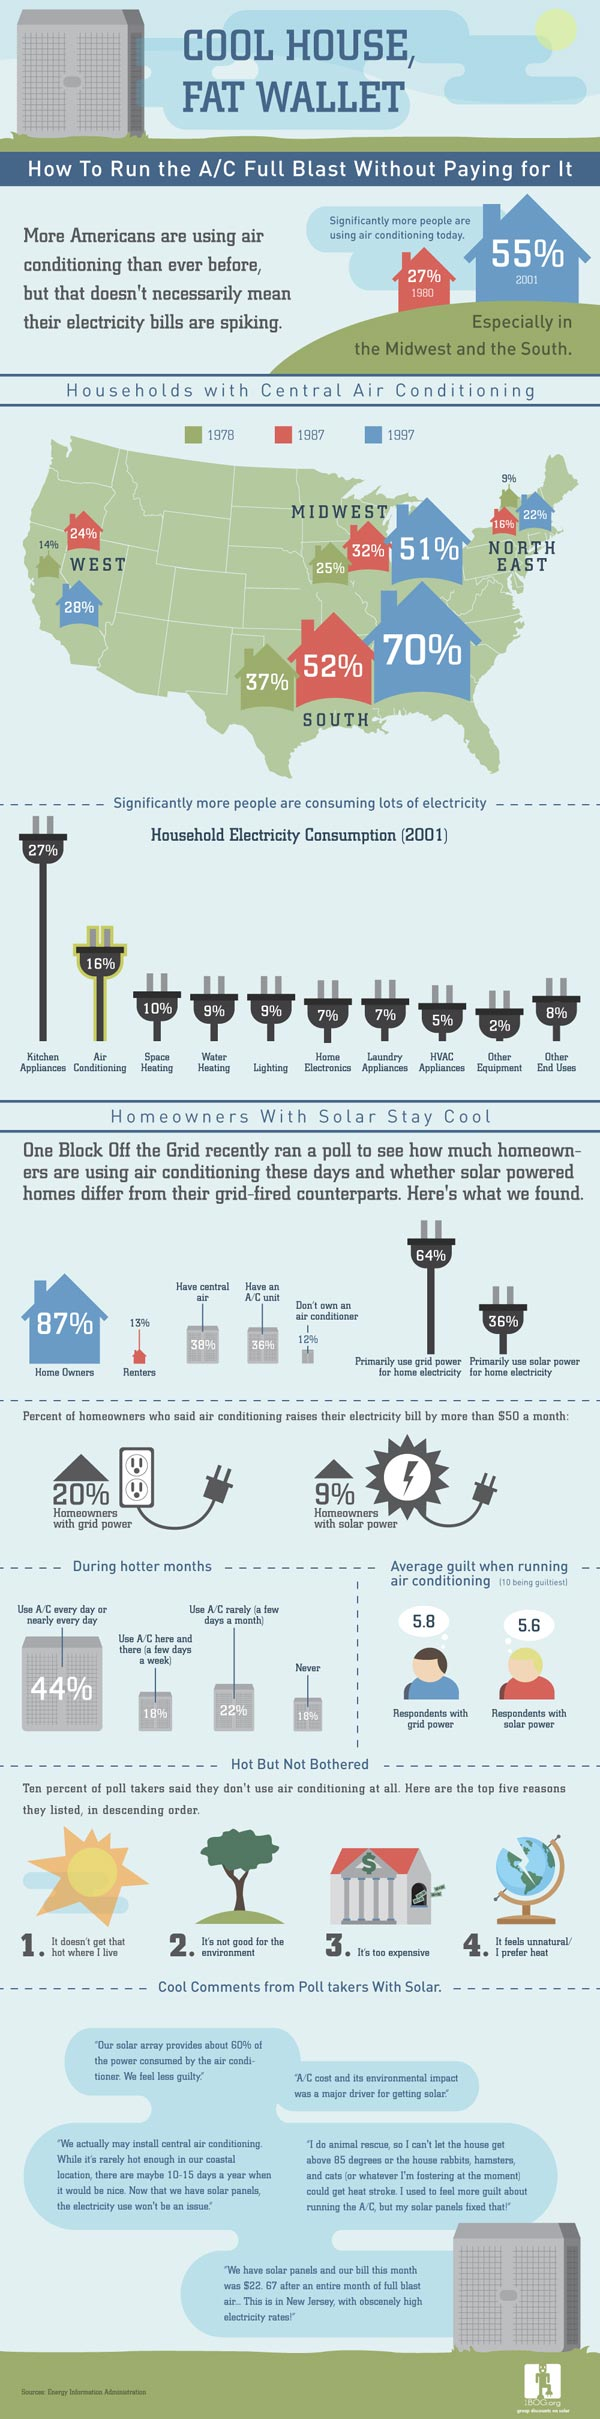 Cool house fat wallet infographic wolff mechanical inc - Cooling house without ac tips summer ...